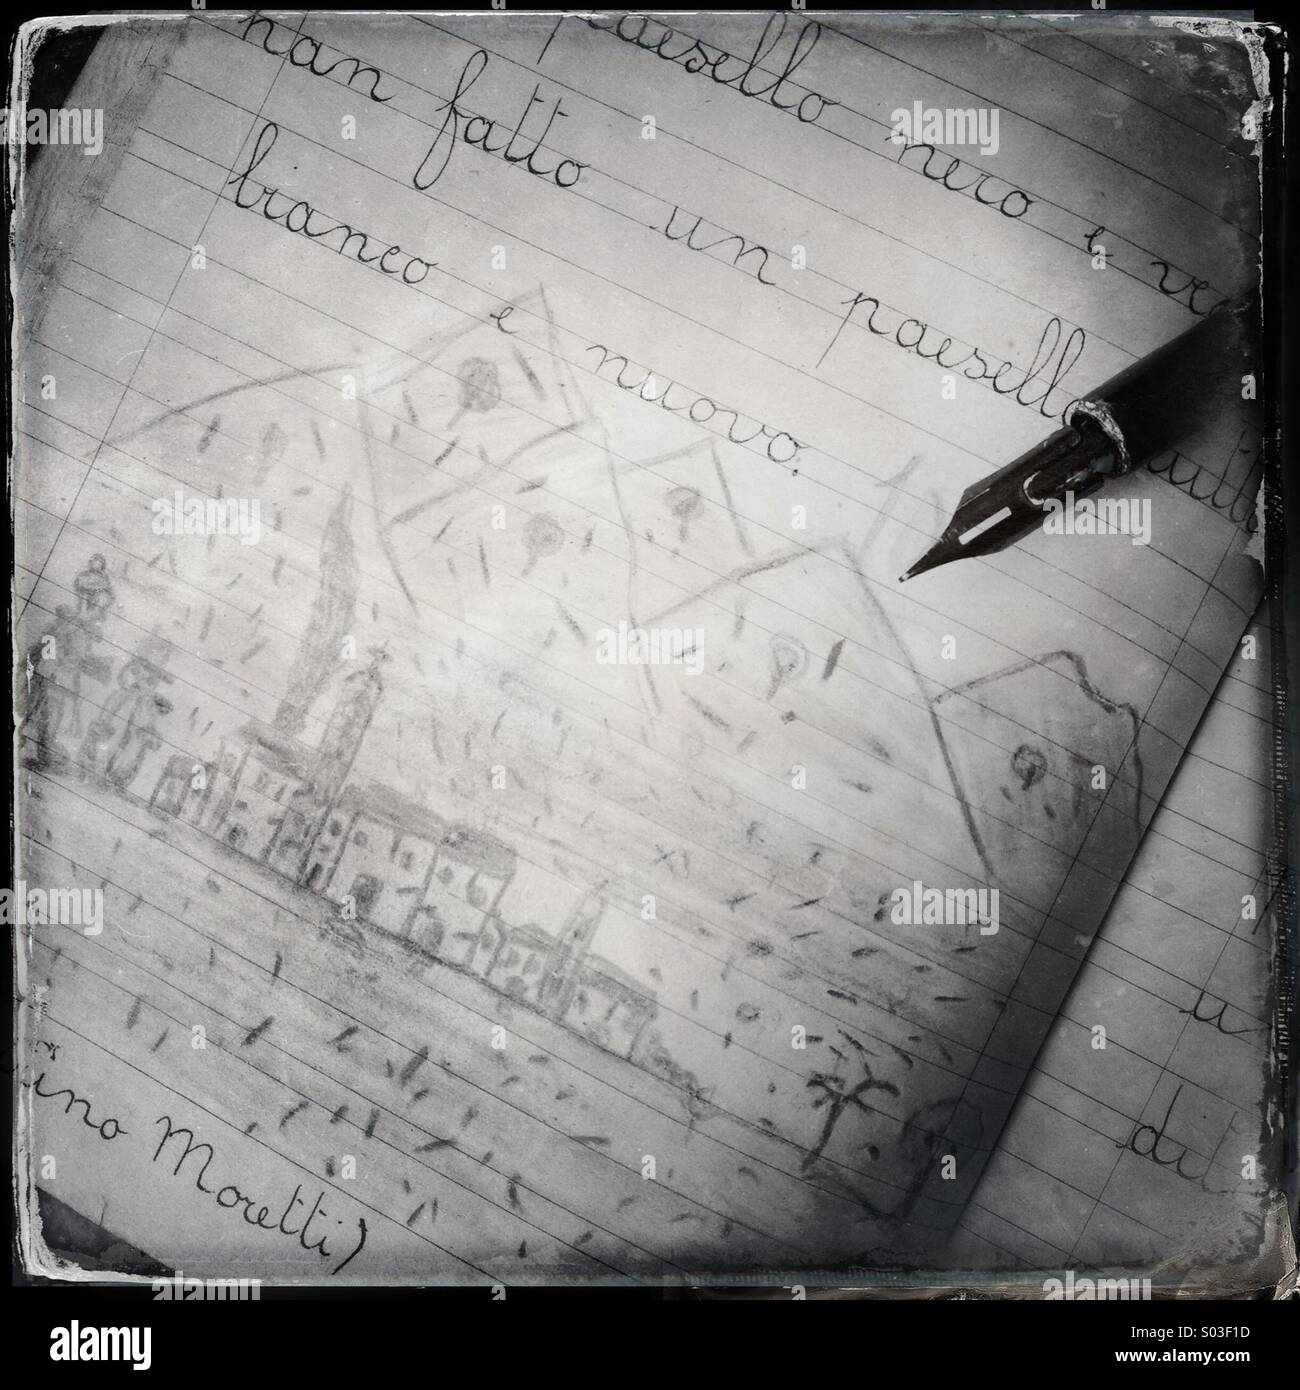 Old school notebook with writings and drawings - Stock Image